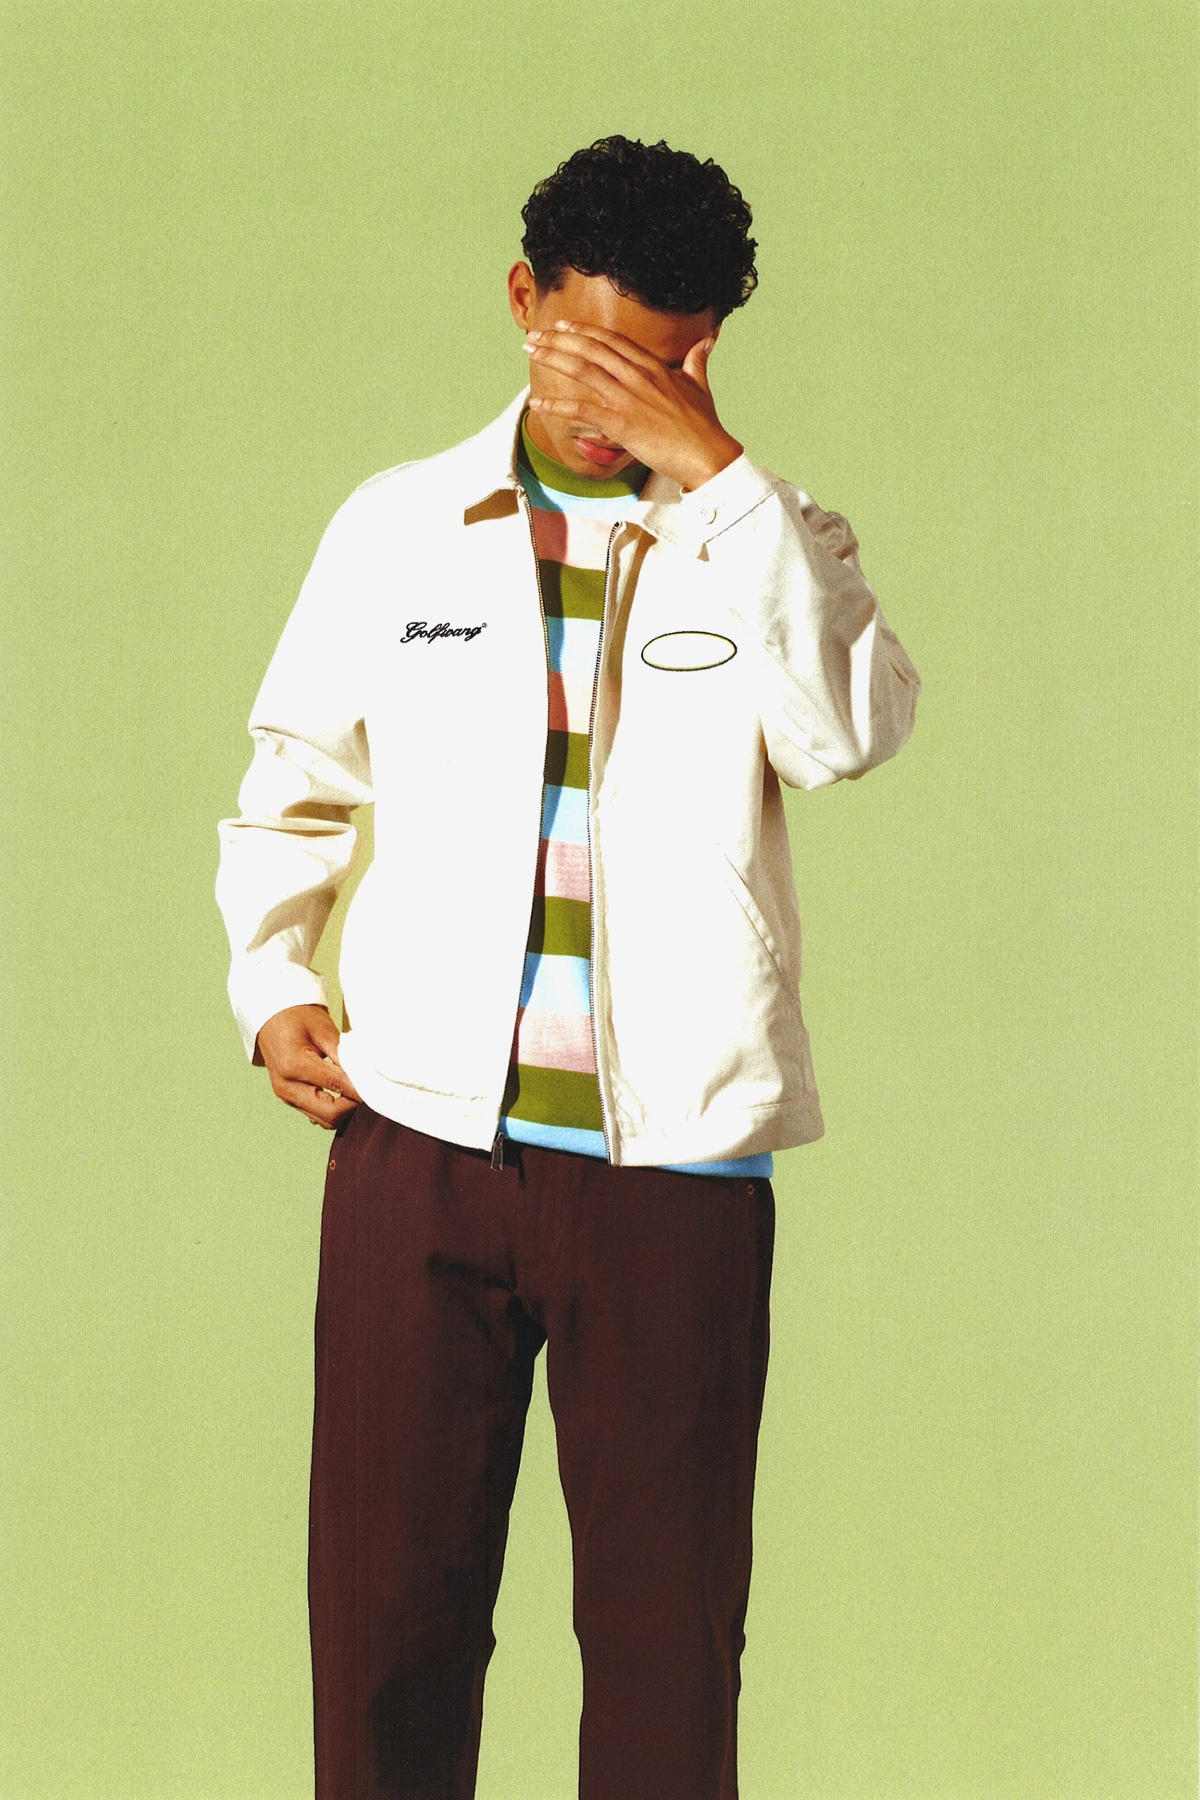 GOLF WANG FALL 2020 trucker jacket